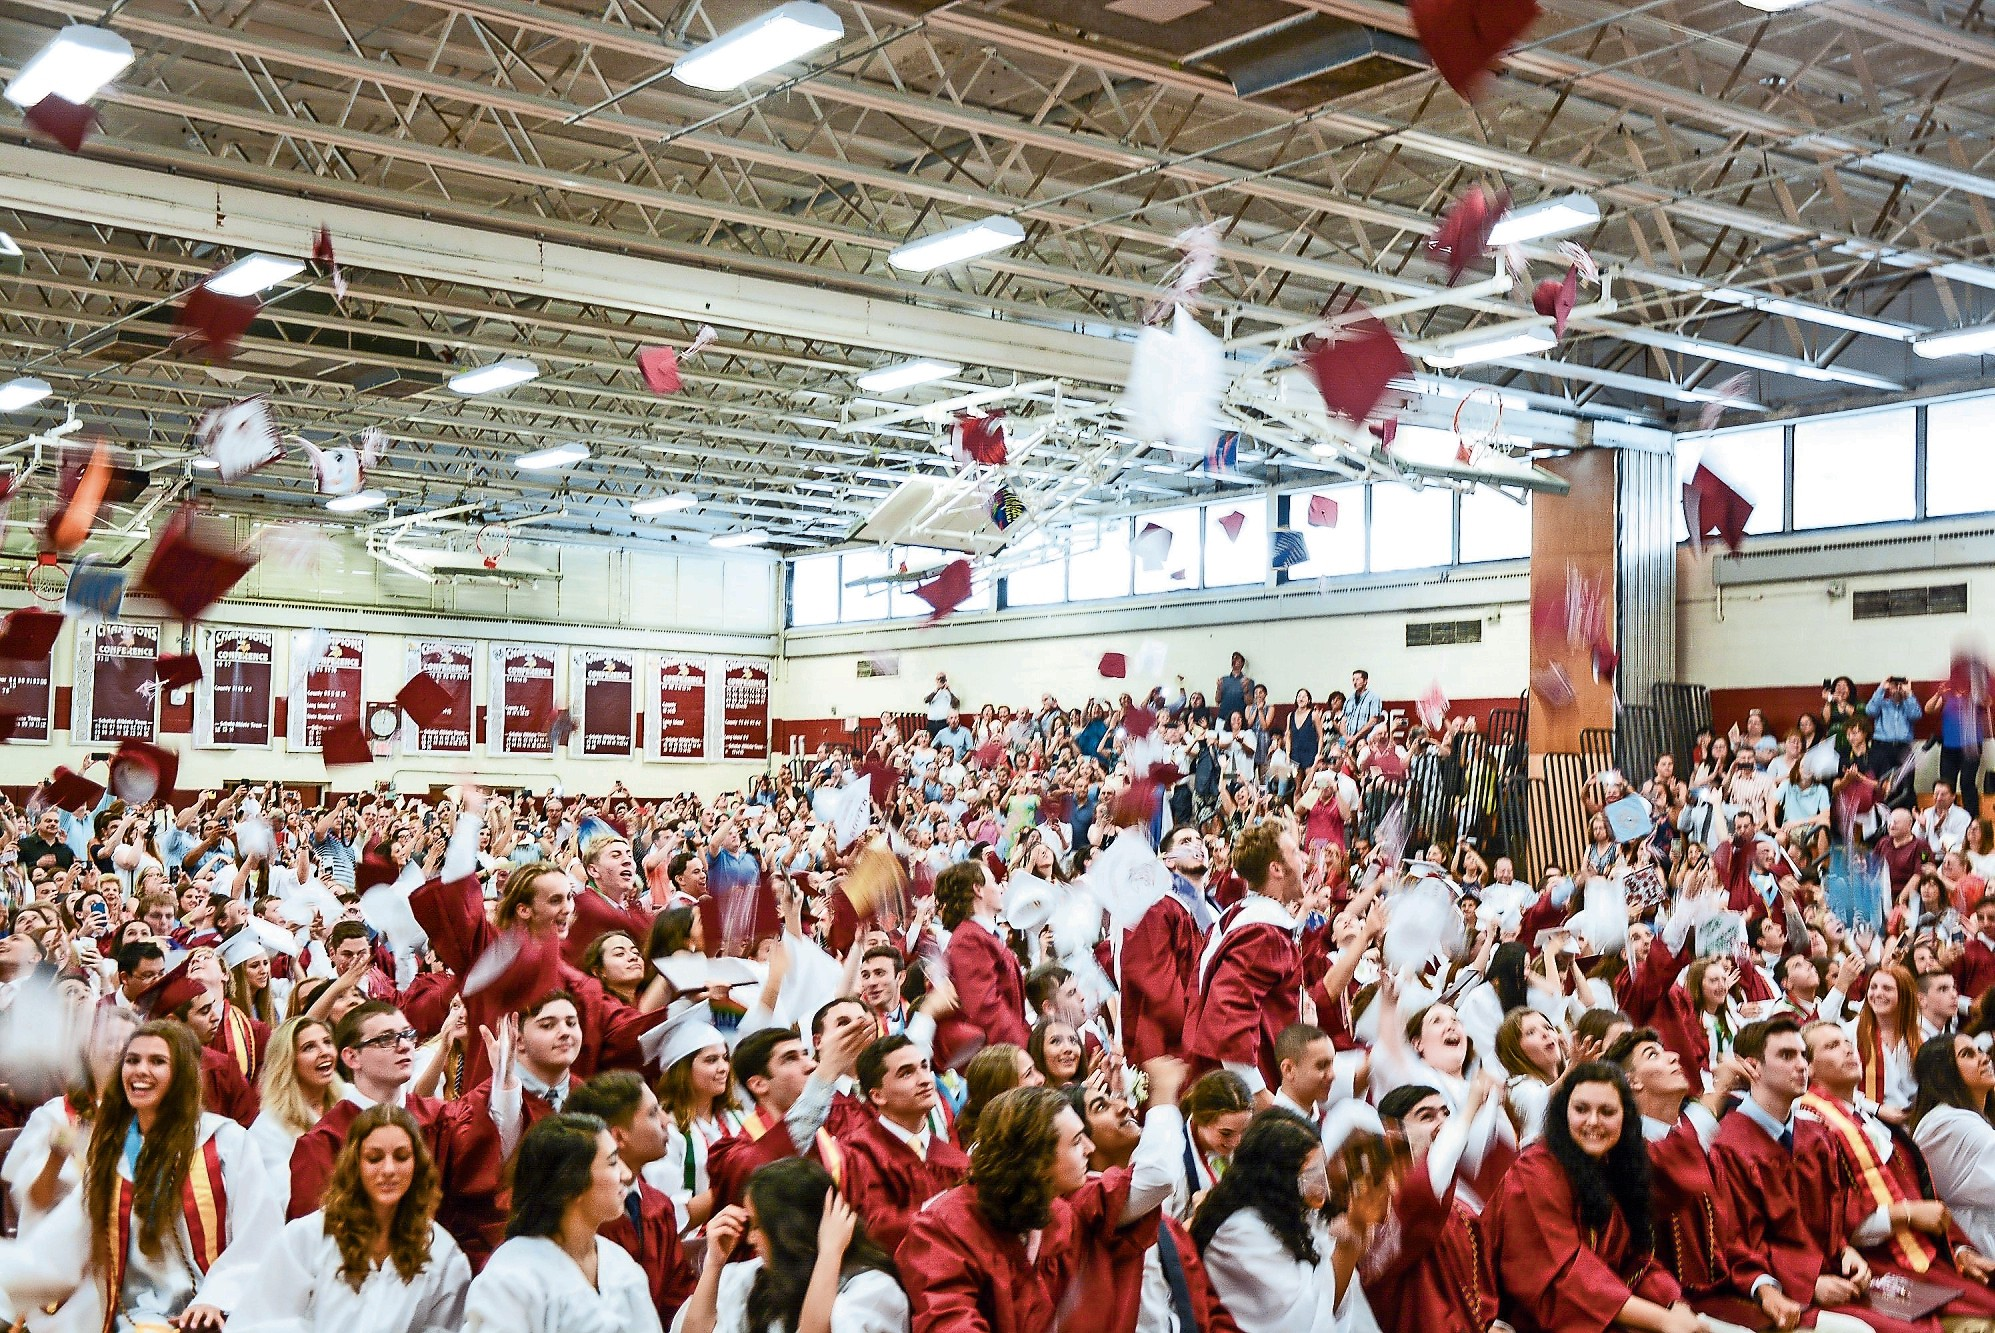 Mortarboards flew to the ceiling after Principal Albert Cousins shared his closing remarks at North Shore High School's graduation ceremony last Friday in the school gymnasium.